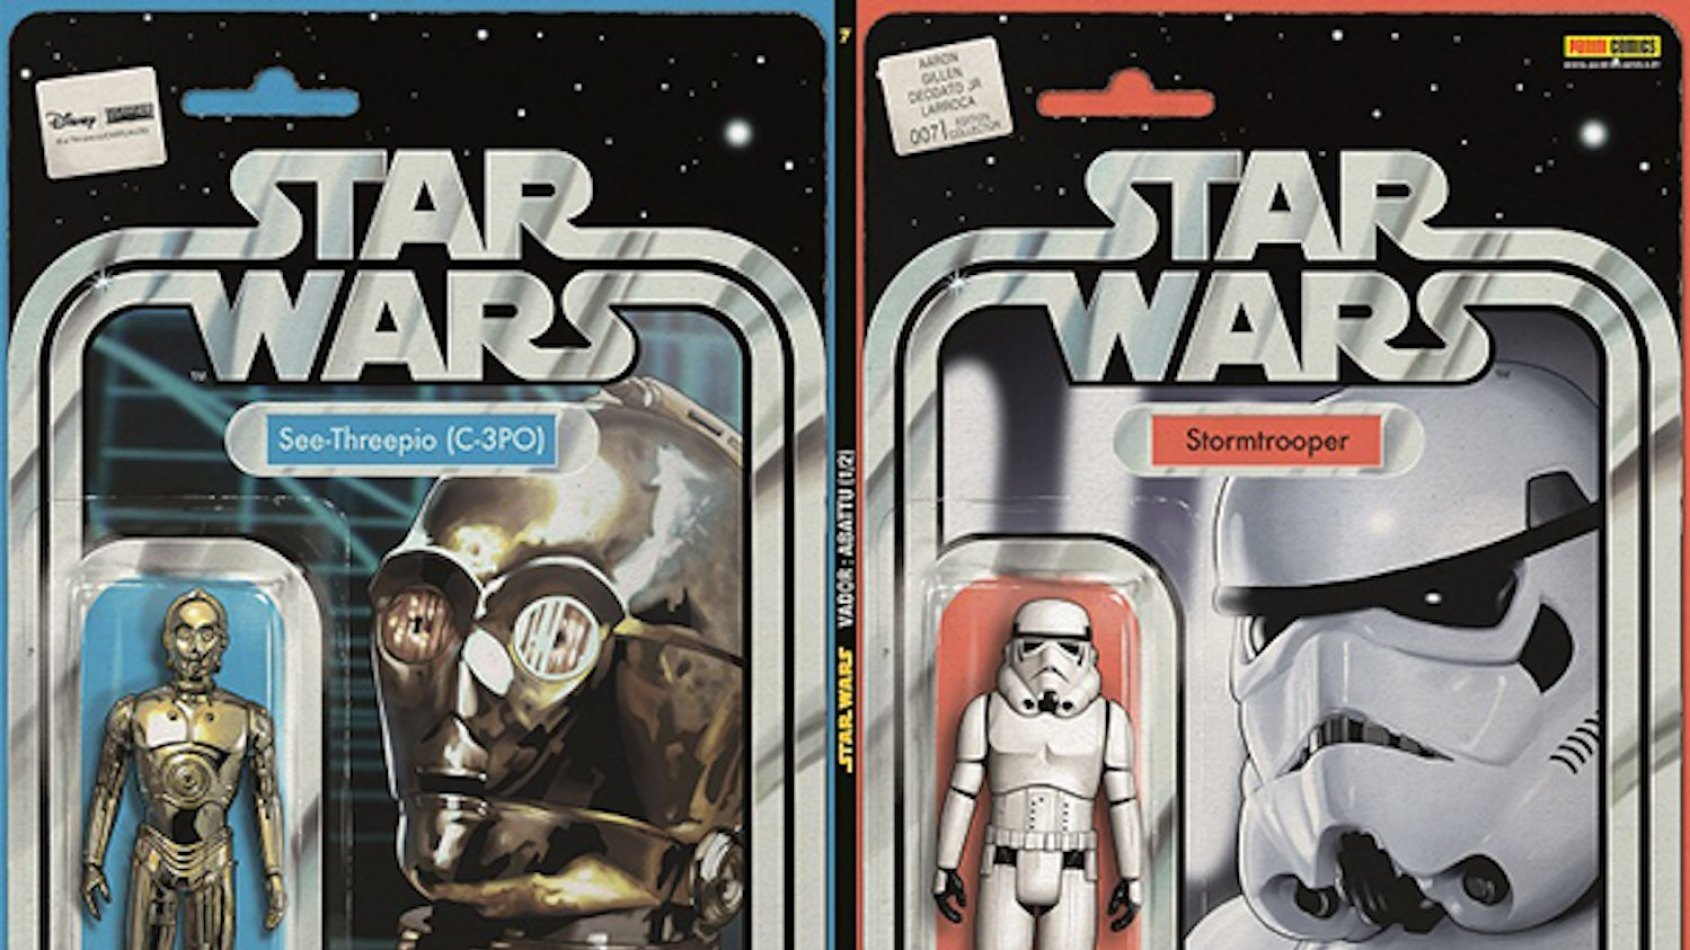 L'exclu Comics de G�n�rations Star Wars disponible pour tous